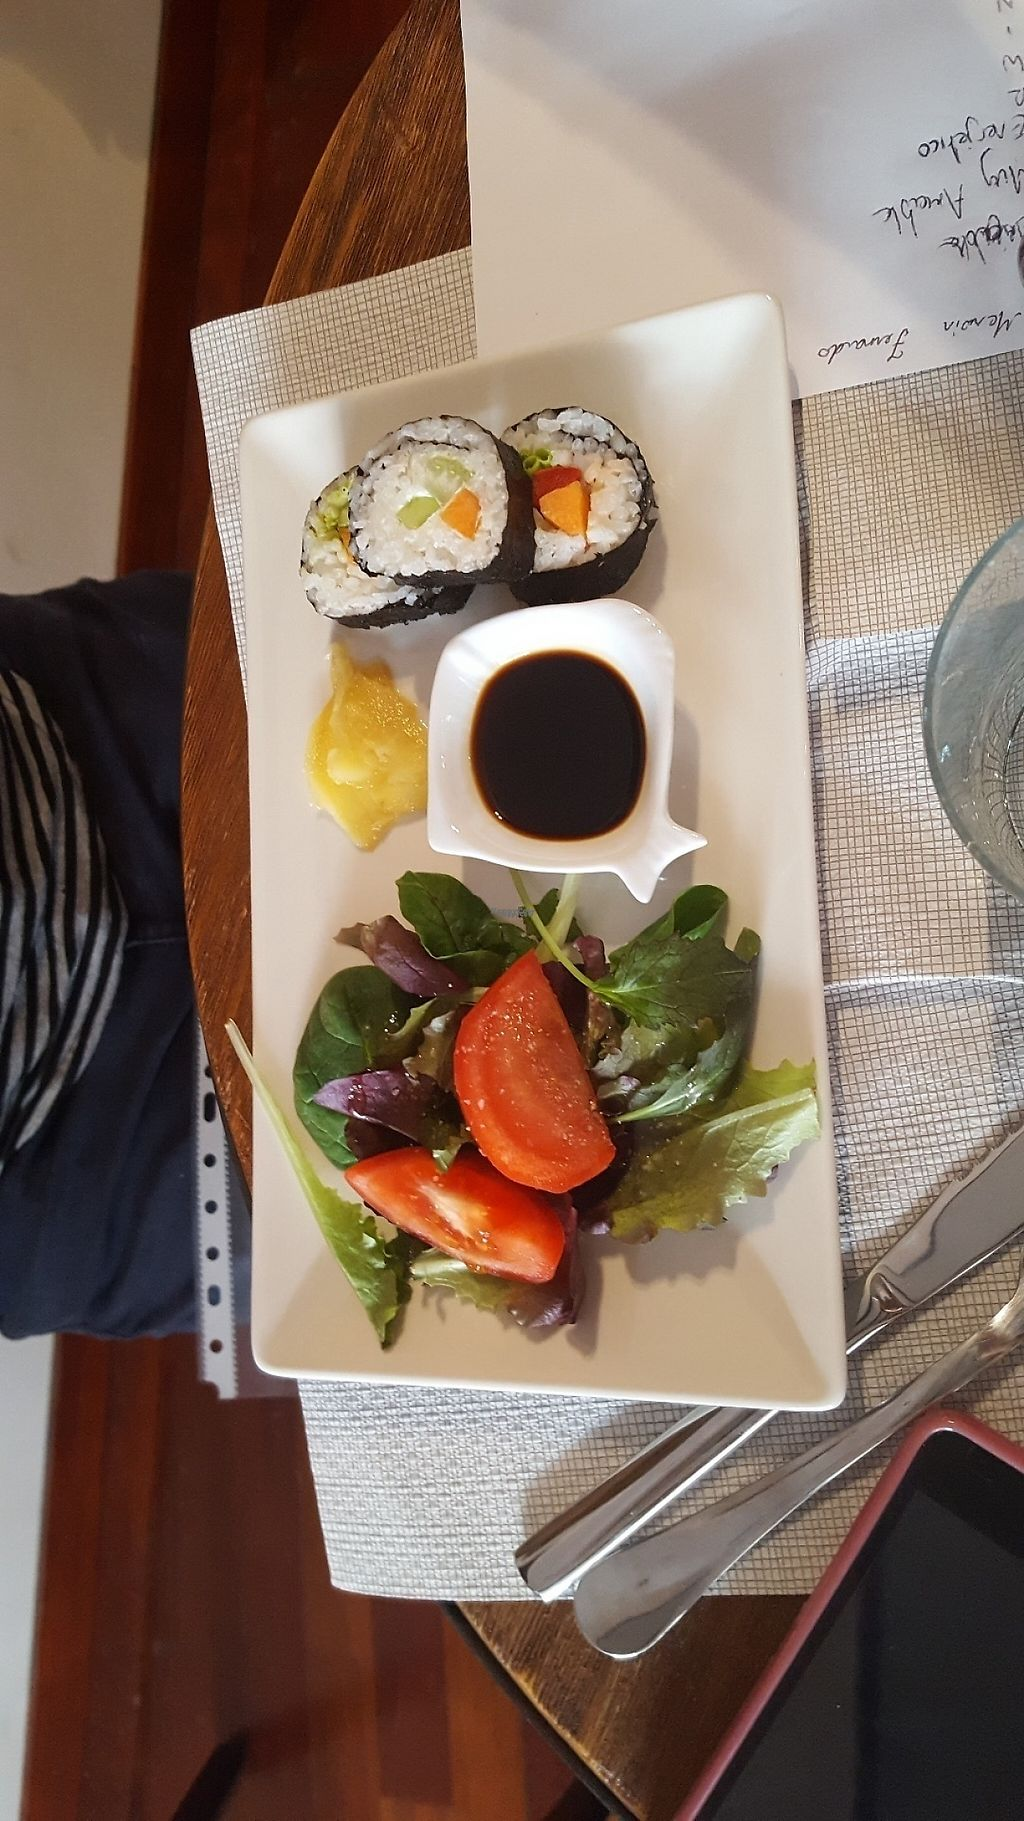 """Photo of Codigos del Arte  by <a href=""""/members/profile/TheCrumbyVegan"""">TheCrumbyVegan</a> <br/>Vegan sushi <br/> April 13, 2017  - <a href='/contact/abuse/image/90372/247621'>Report</a>"""